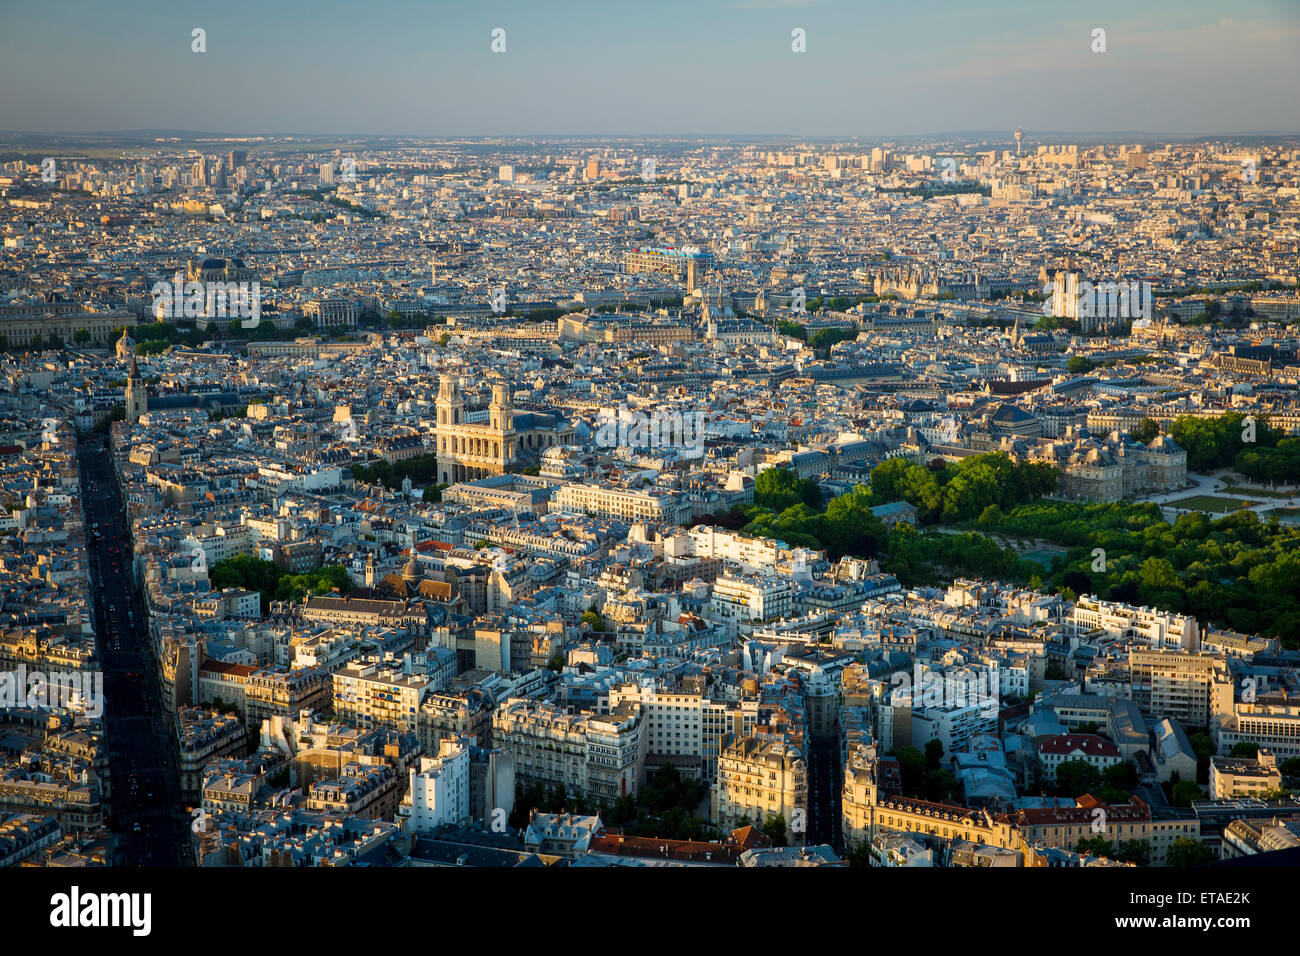 Overhead view of Eglise Saint Sulpice and the buldings of Paris, France - Stock Image